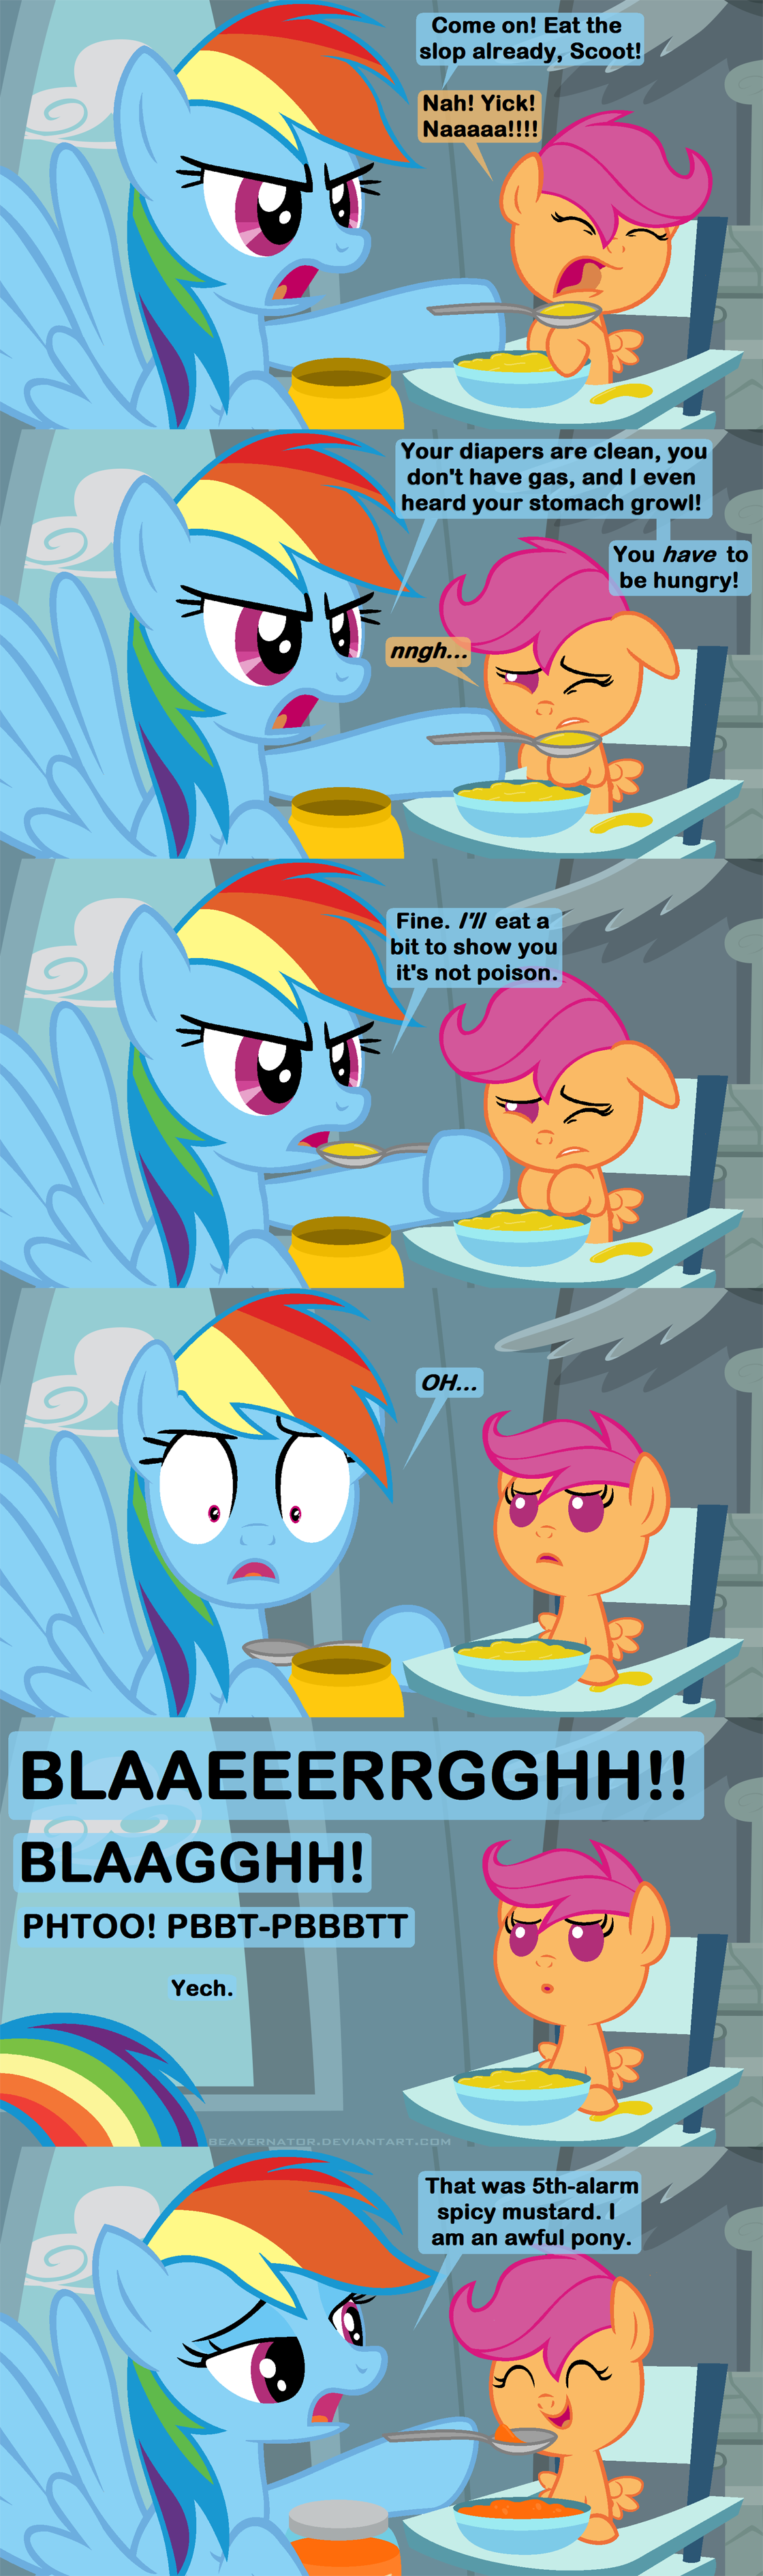 Feeding Scootaloo By Beavernator On Deviantart Wolf rainbow dash by affanita on deviantart. feeding scootaloo by beavernator on